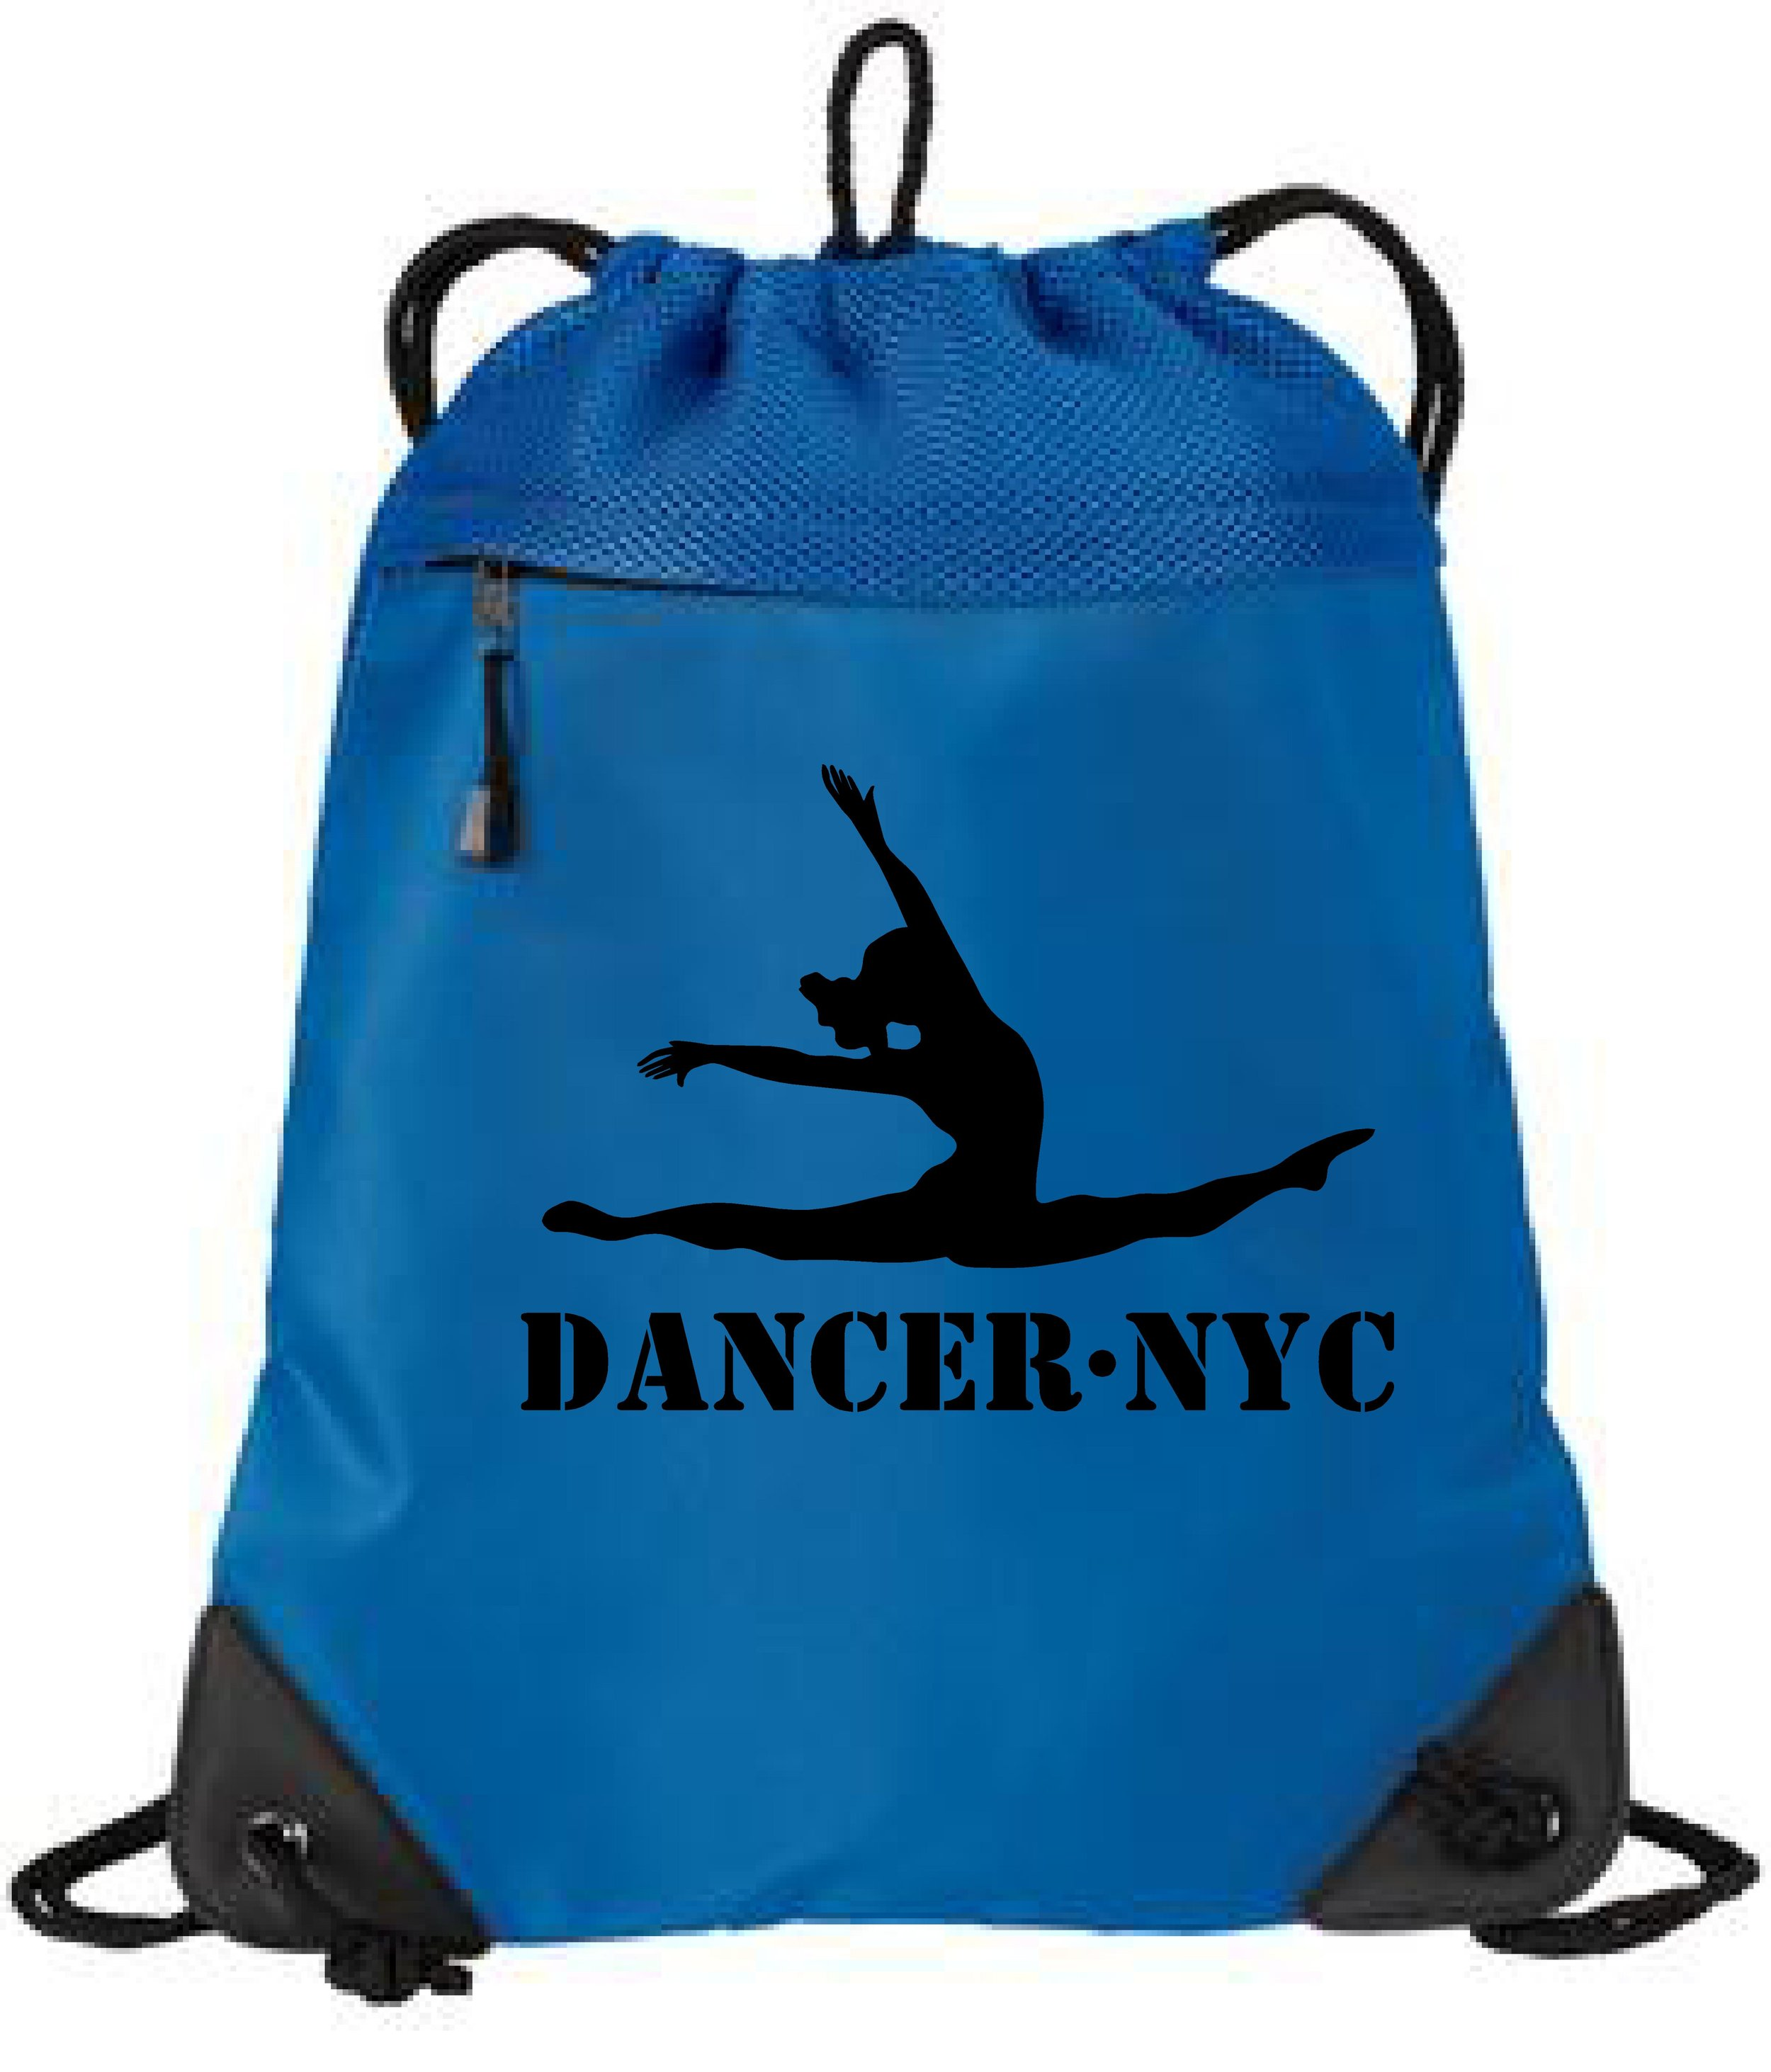 Dancer.NYC Drawstring Tote Bag 1- BLUE - 100% polyester microfiber and air mesh